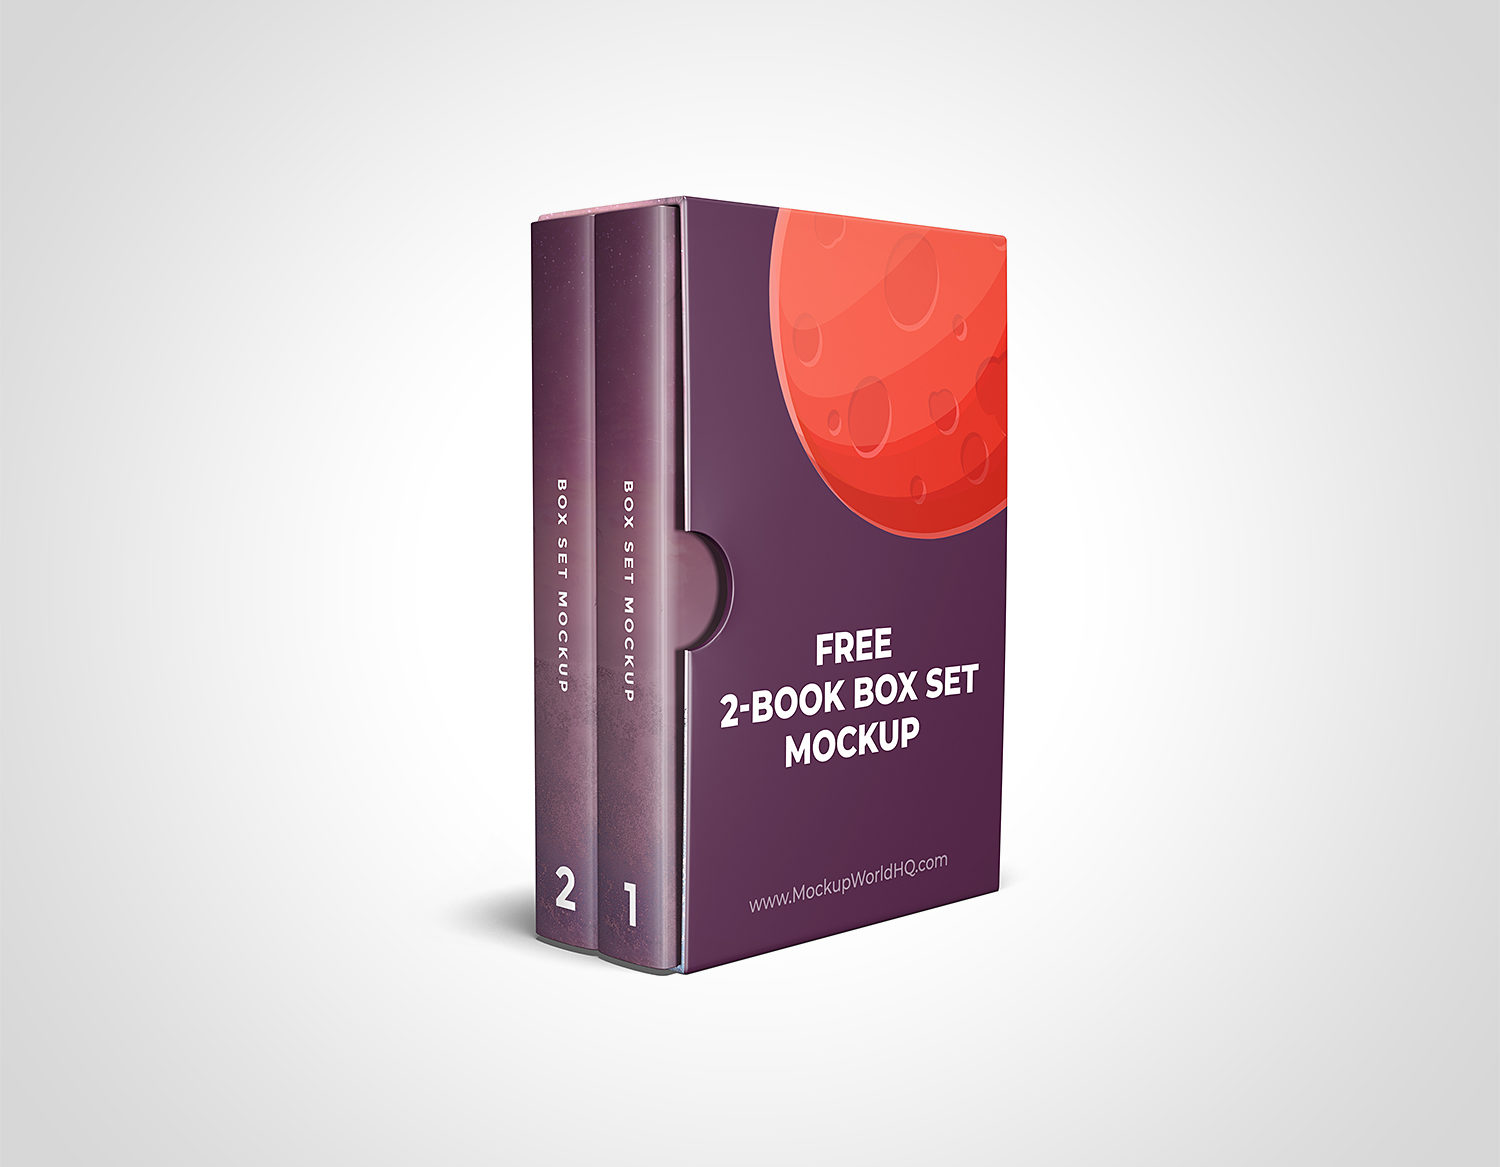 6x9 2-Book Box Set Mockup Template